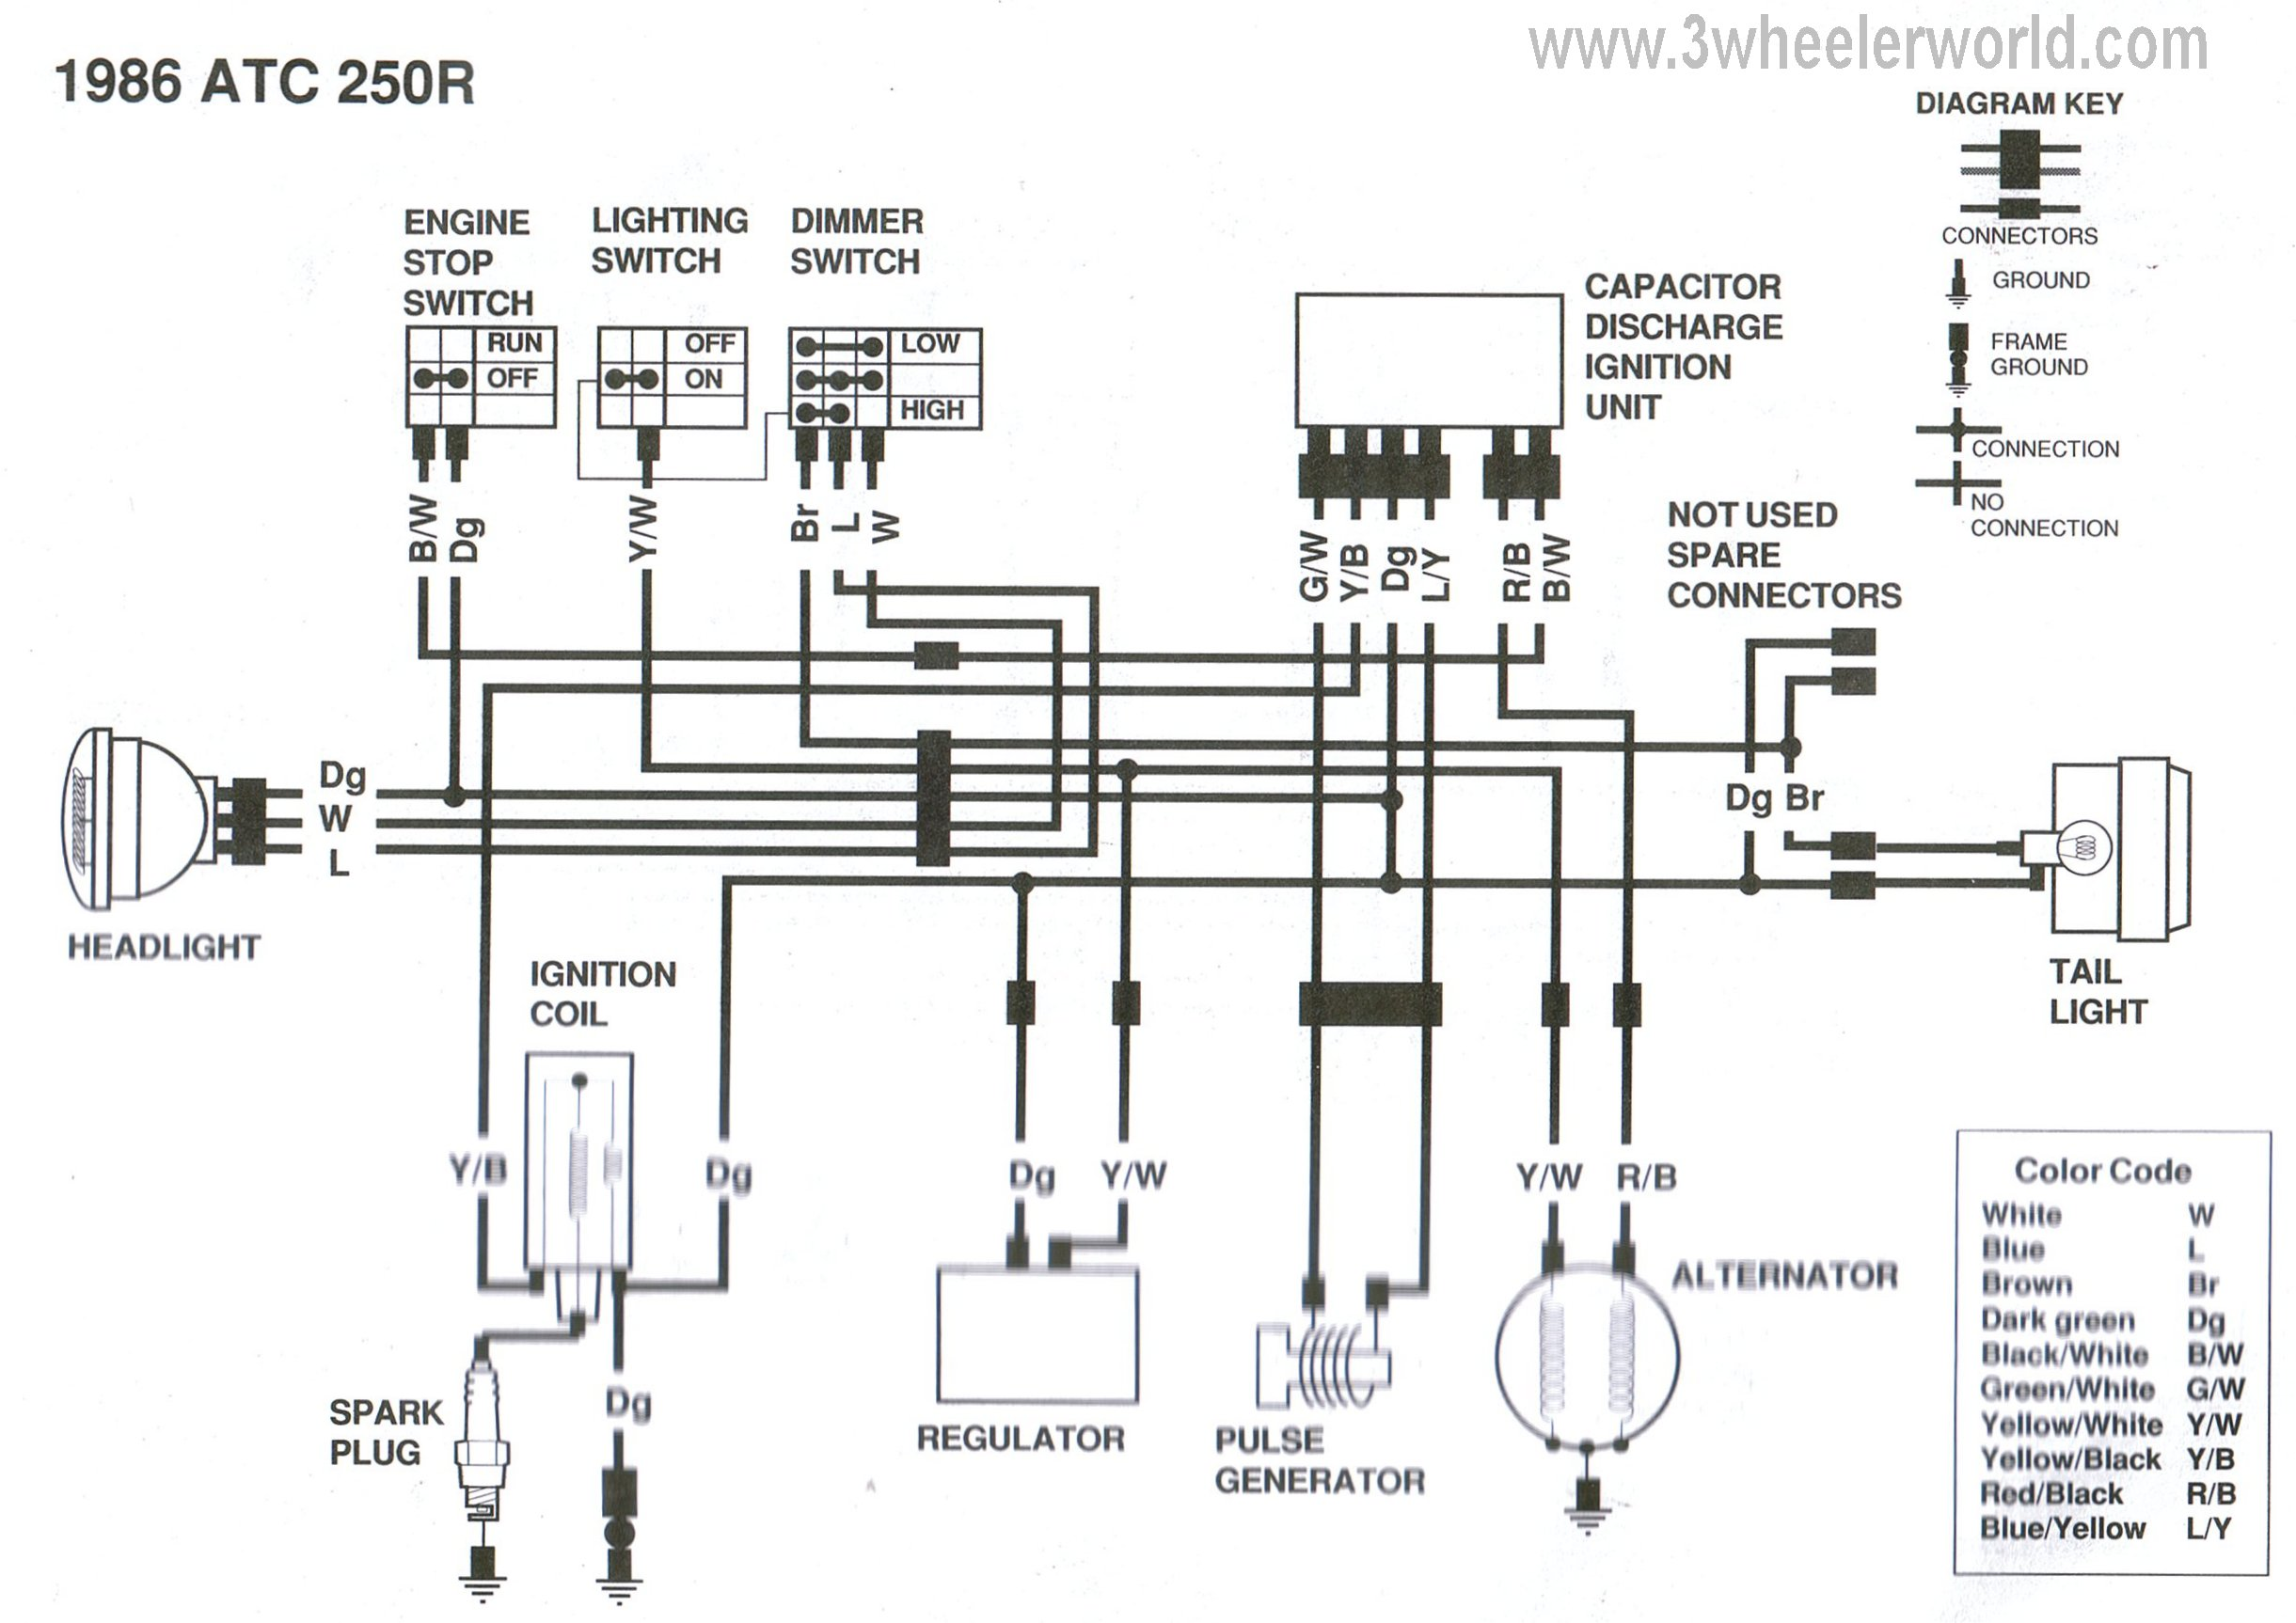 1985 Honda Fourtrax 250 Wiring Diagram : 38 Wiring Diagram